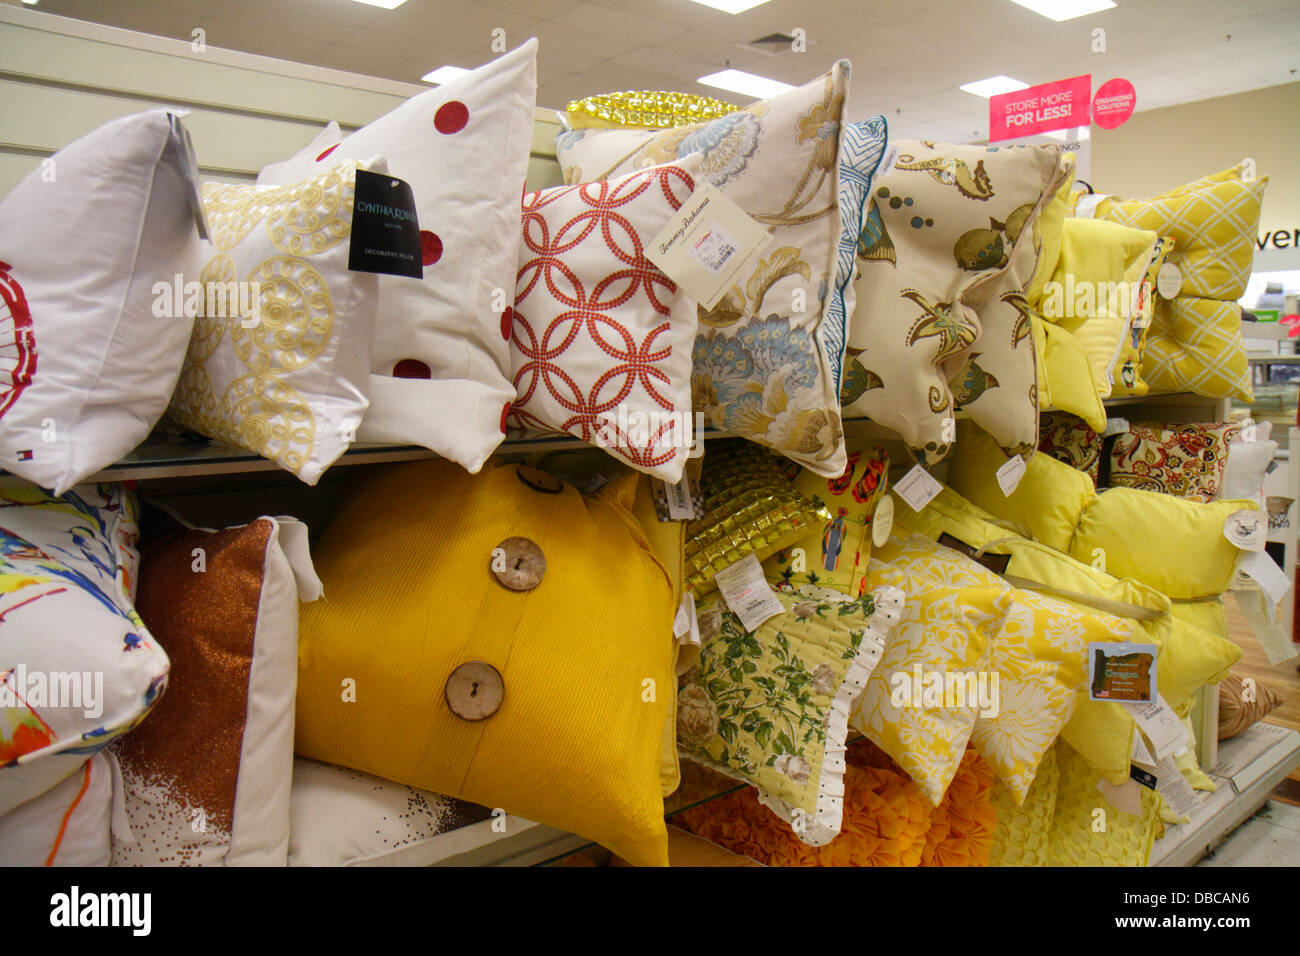 Miami Florida Aventura Marshalls Home Goods discount department store  retail display sale pillows. Miami Florida Aventura Marshalls Home Goods discount department